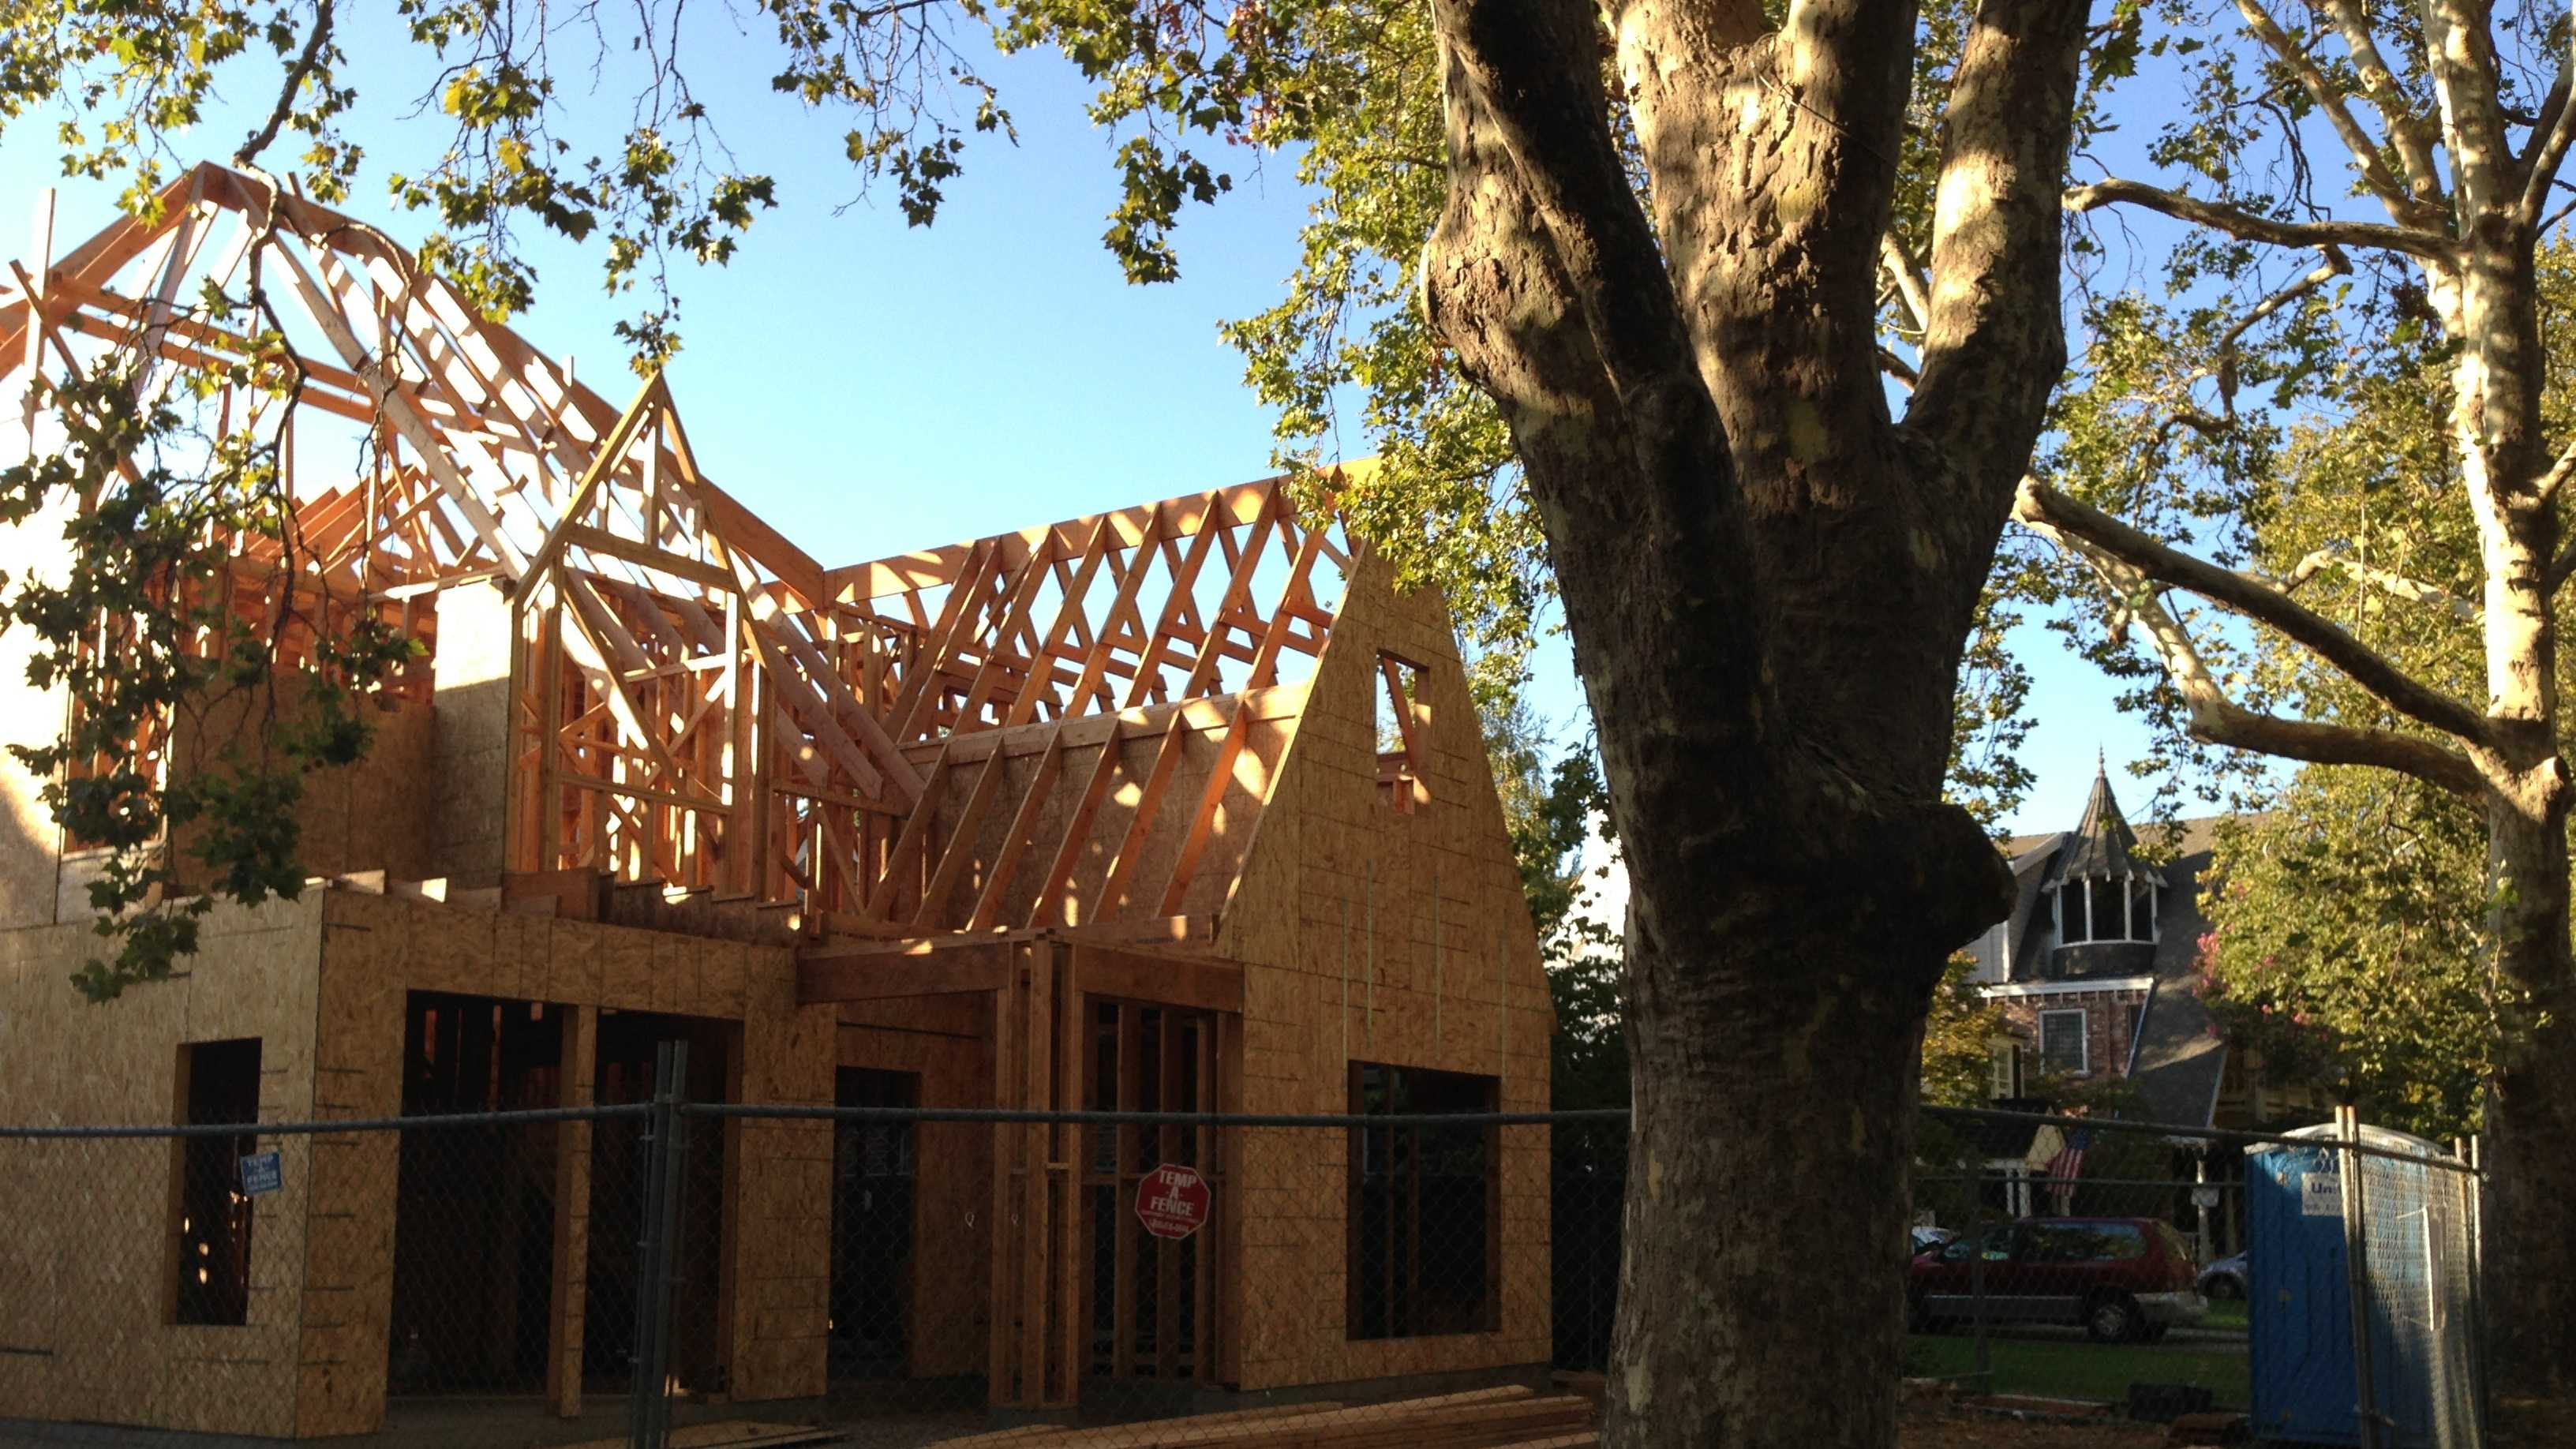 The house on 41st Street in Sacramento has been ordered to be partially demolished.